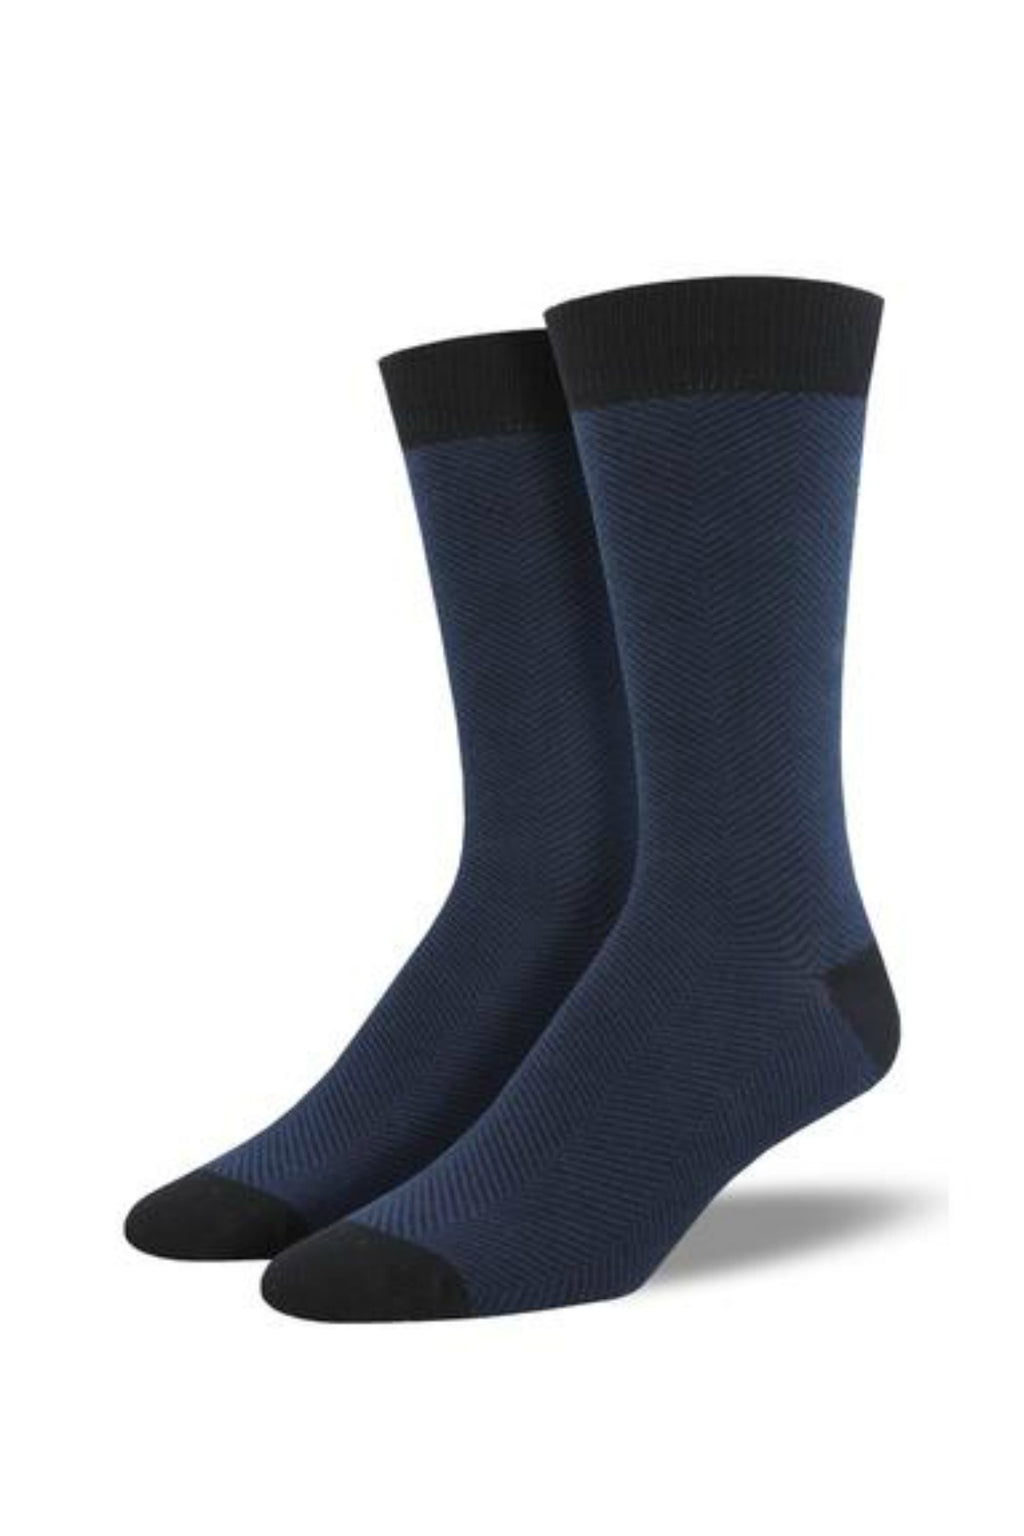 Socksmith Men's Bamboo Socks Solid - Herringbone Navy